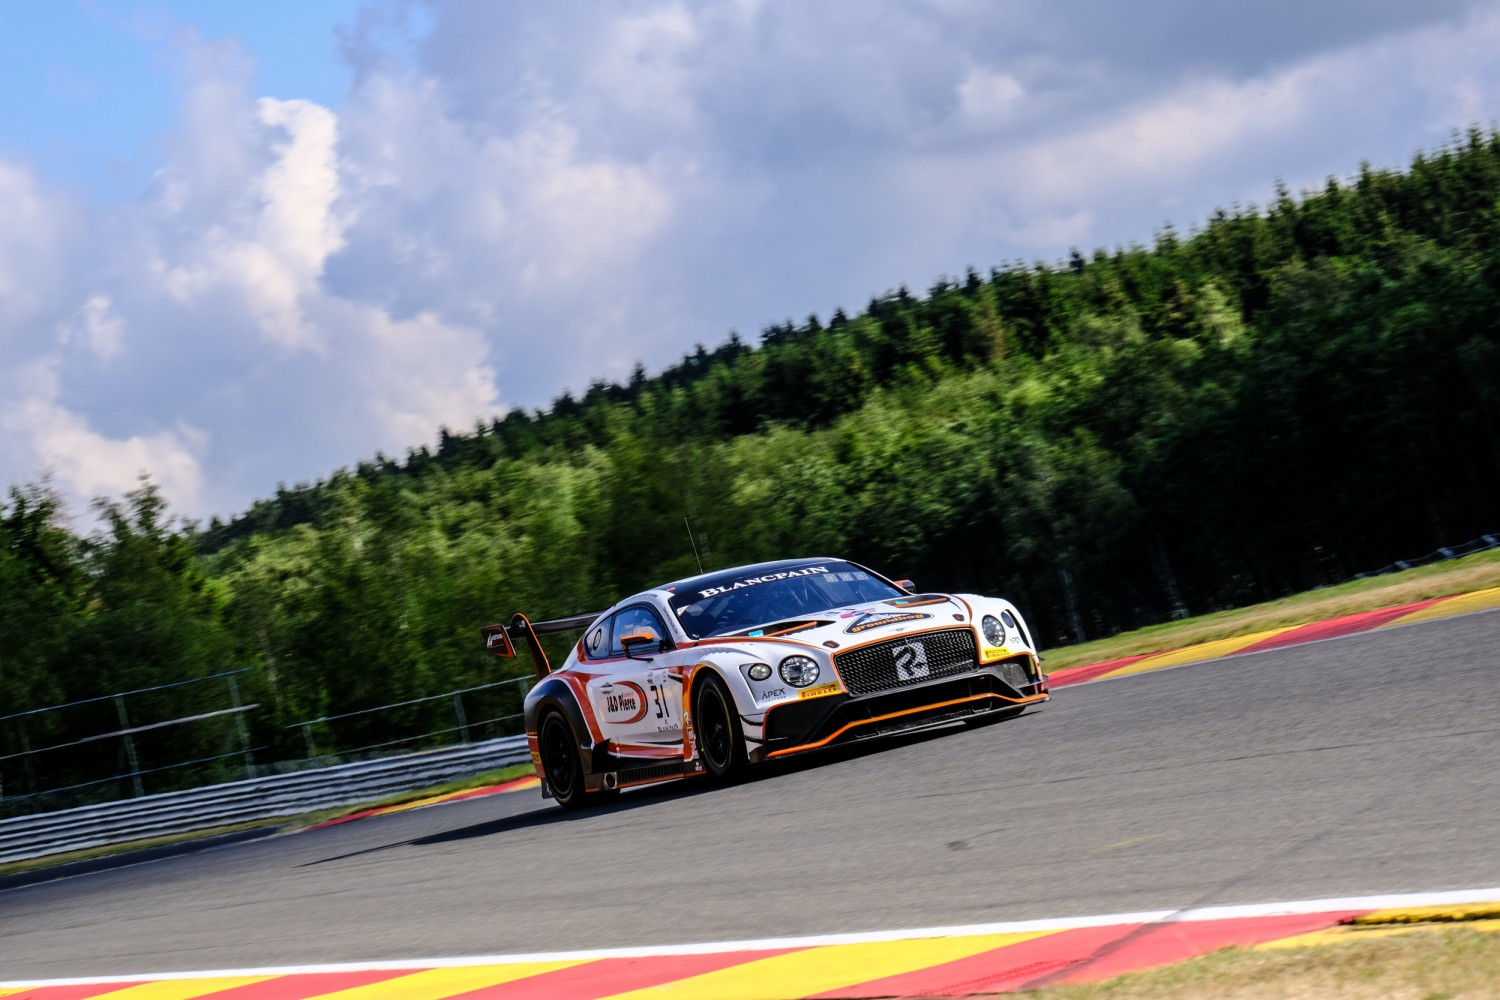 #31 Team Parker Racing GBR Bentley Continental GT3, Track  | SRO / Dirk Bogaerts Photography